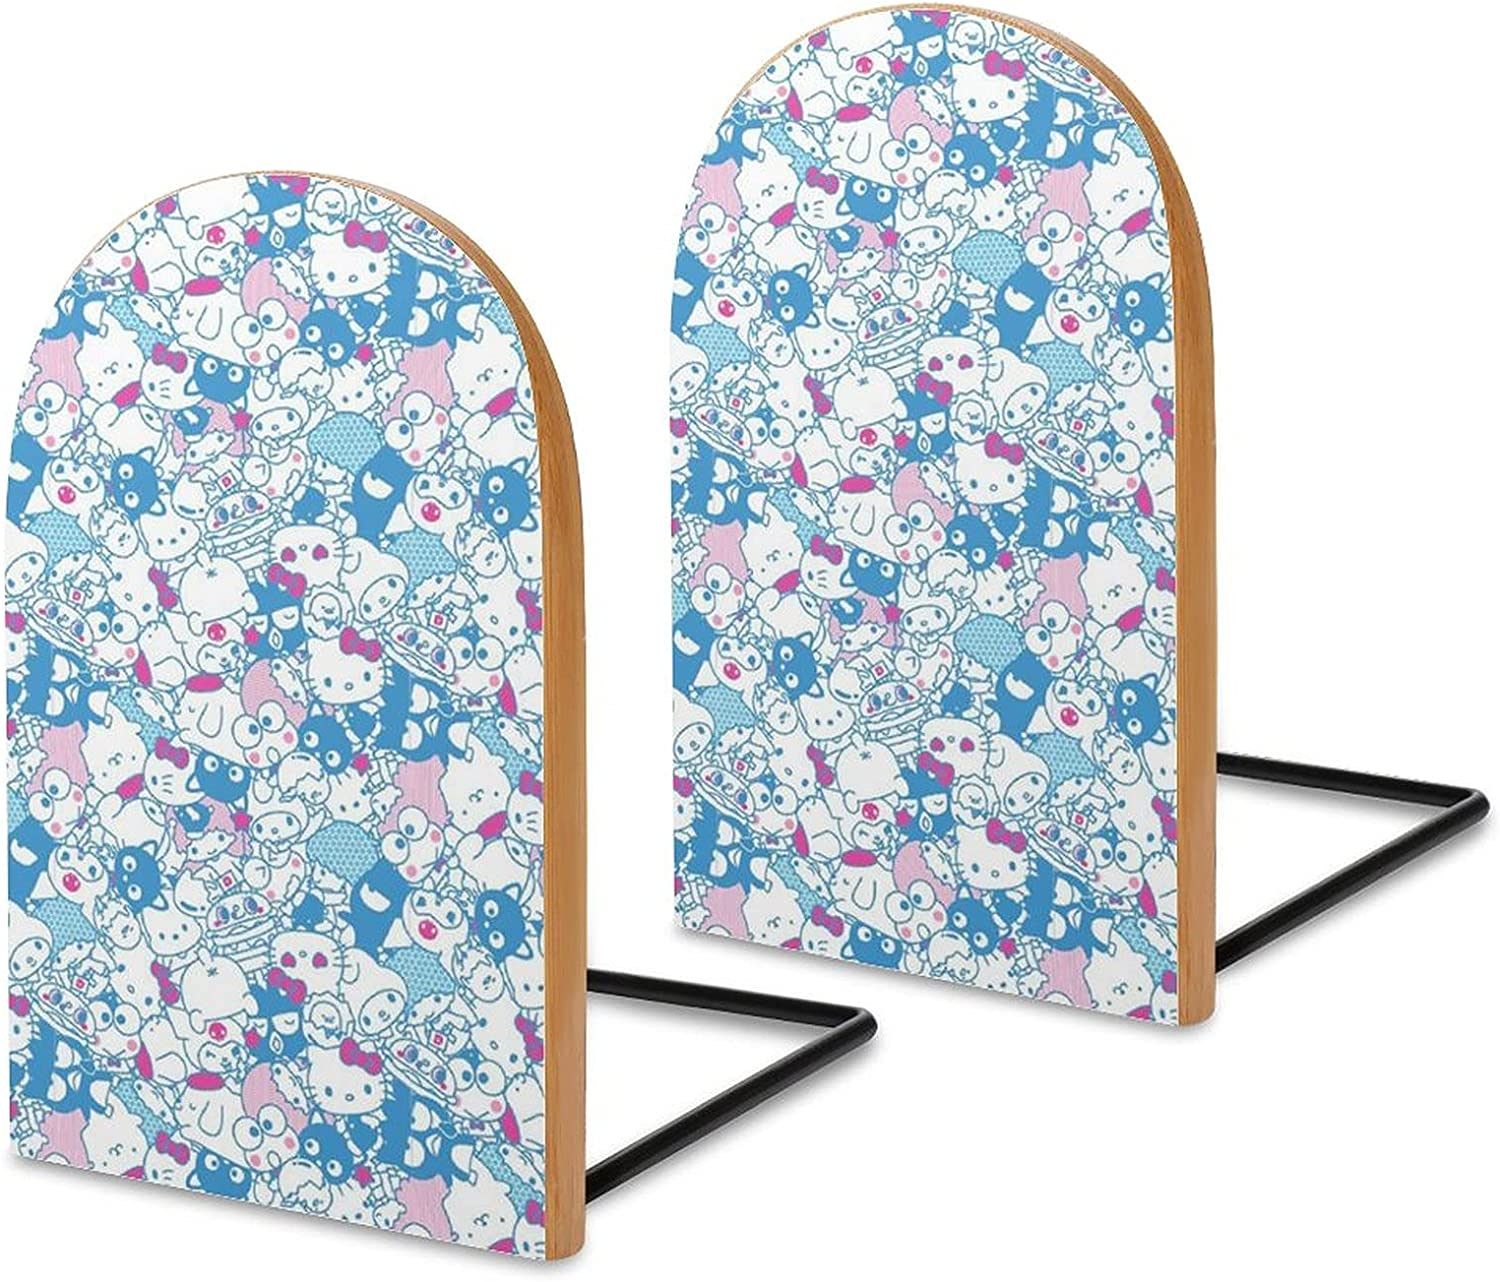 KRISMARIO Blue Hello Kitty Clearance All items in the store SALE Limited time 2pcs Logs Modern Heavy Wood Bookends